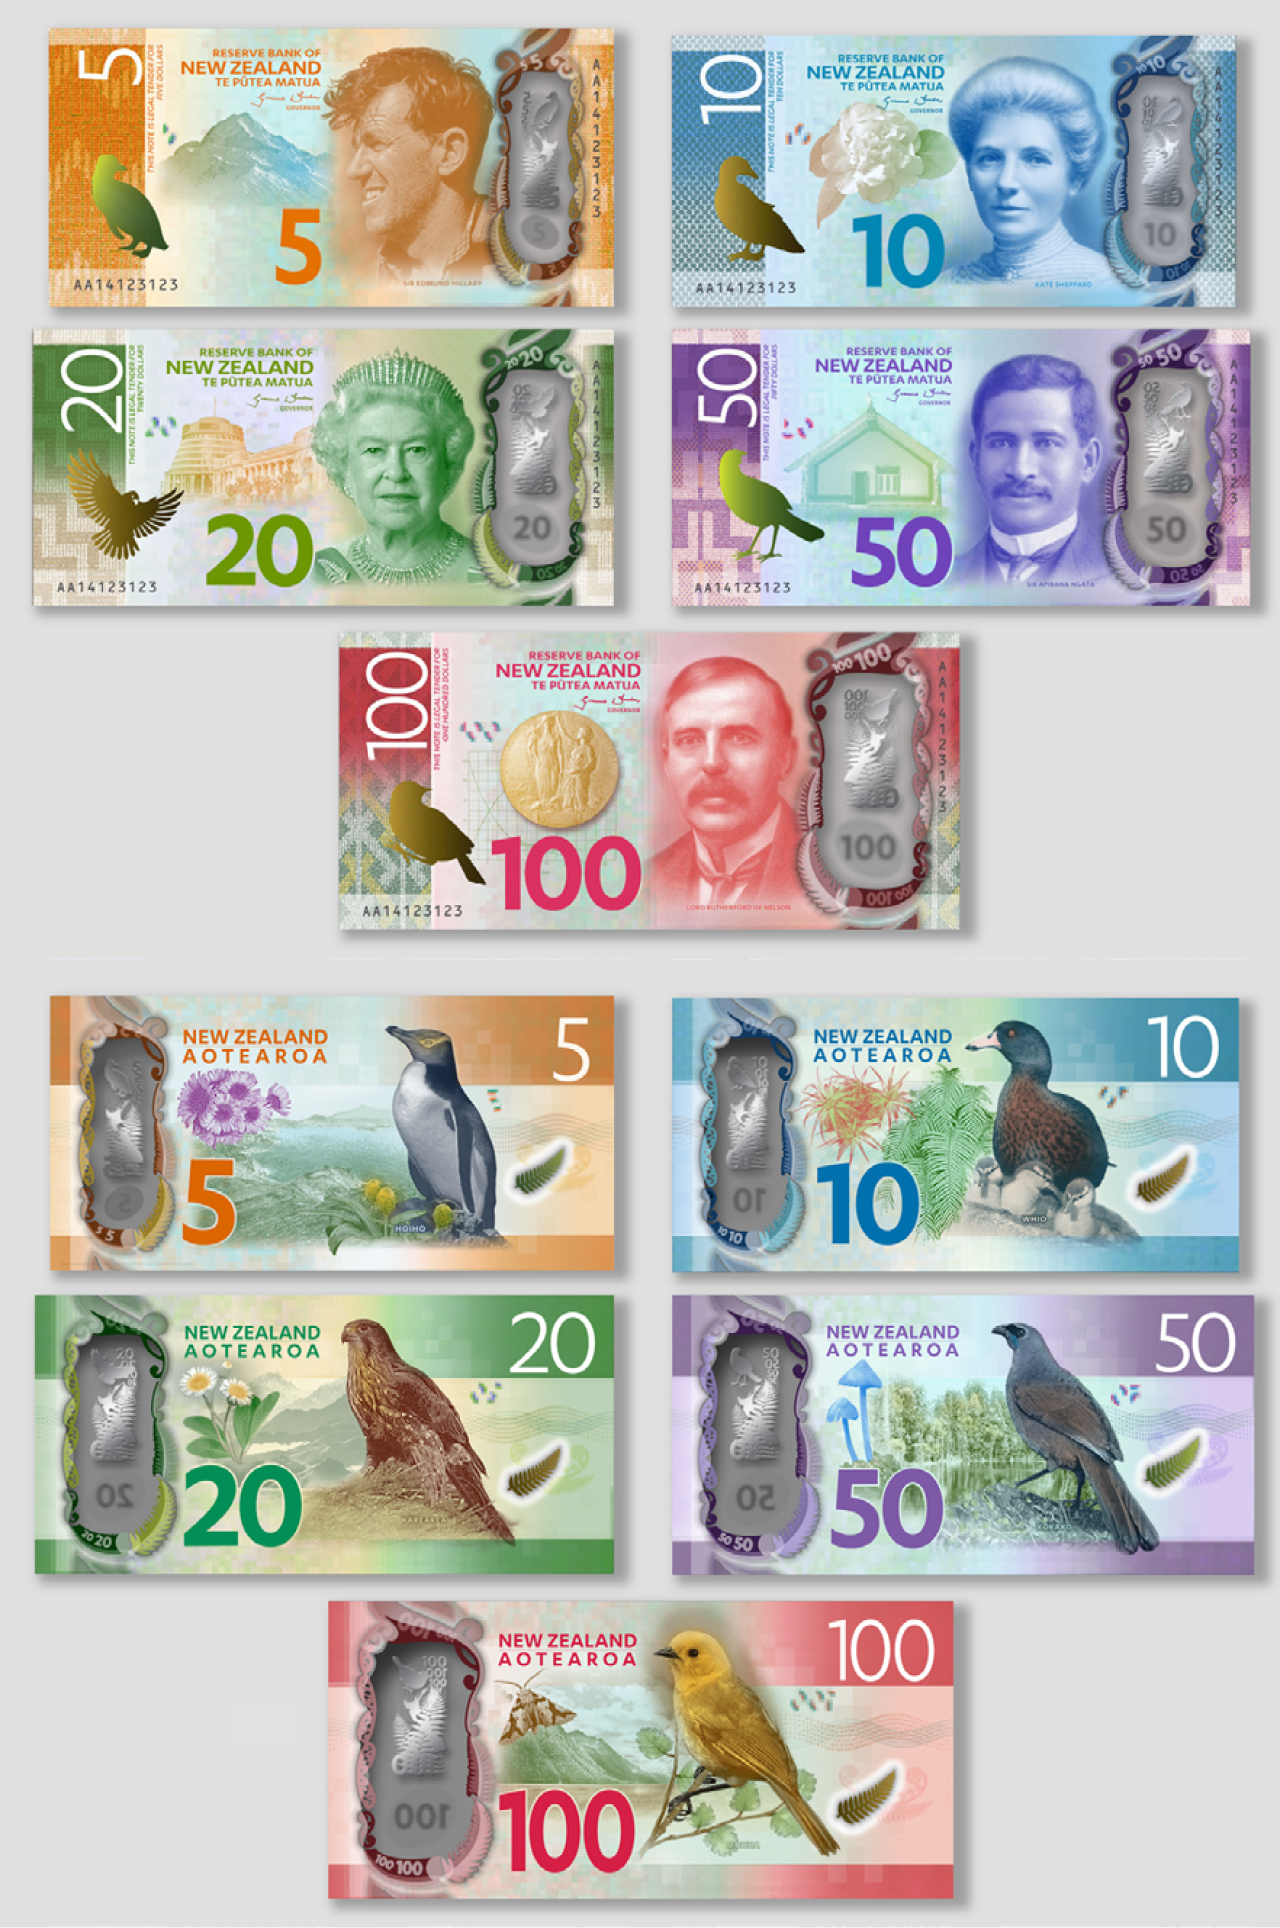 New Zealand Banknotes Series 7 The Kiwis Catch All